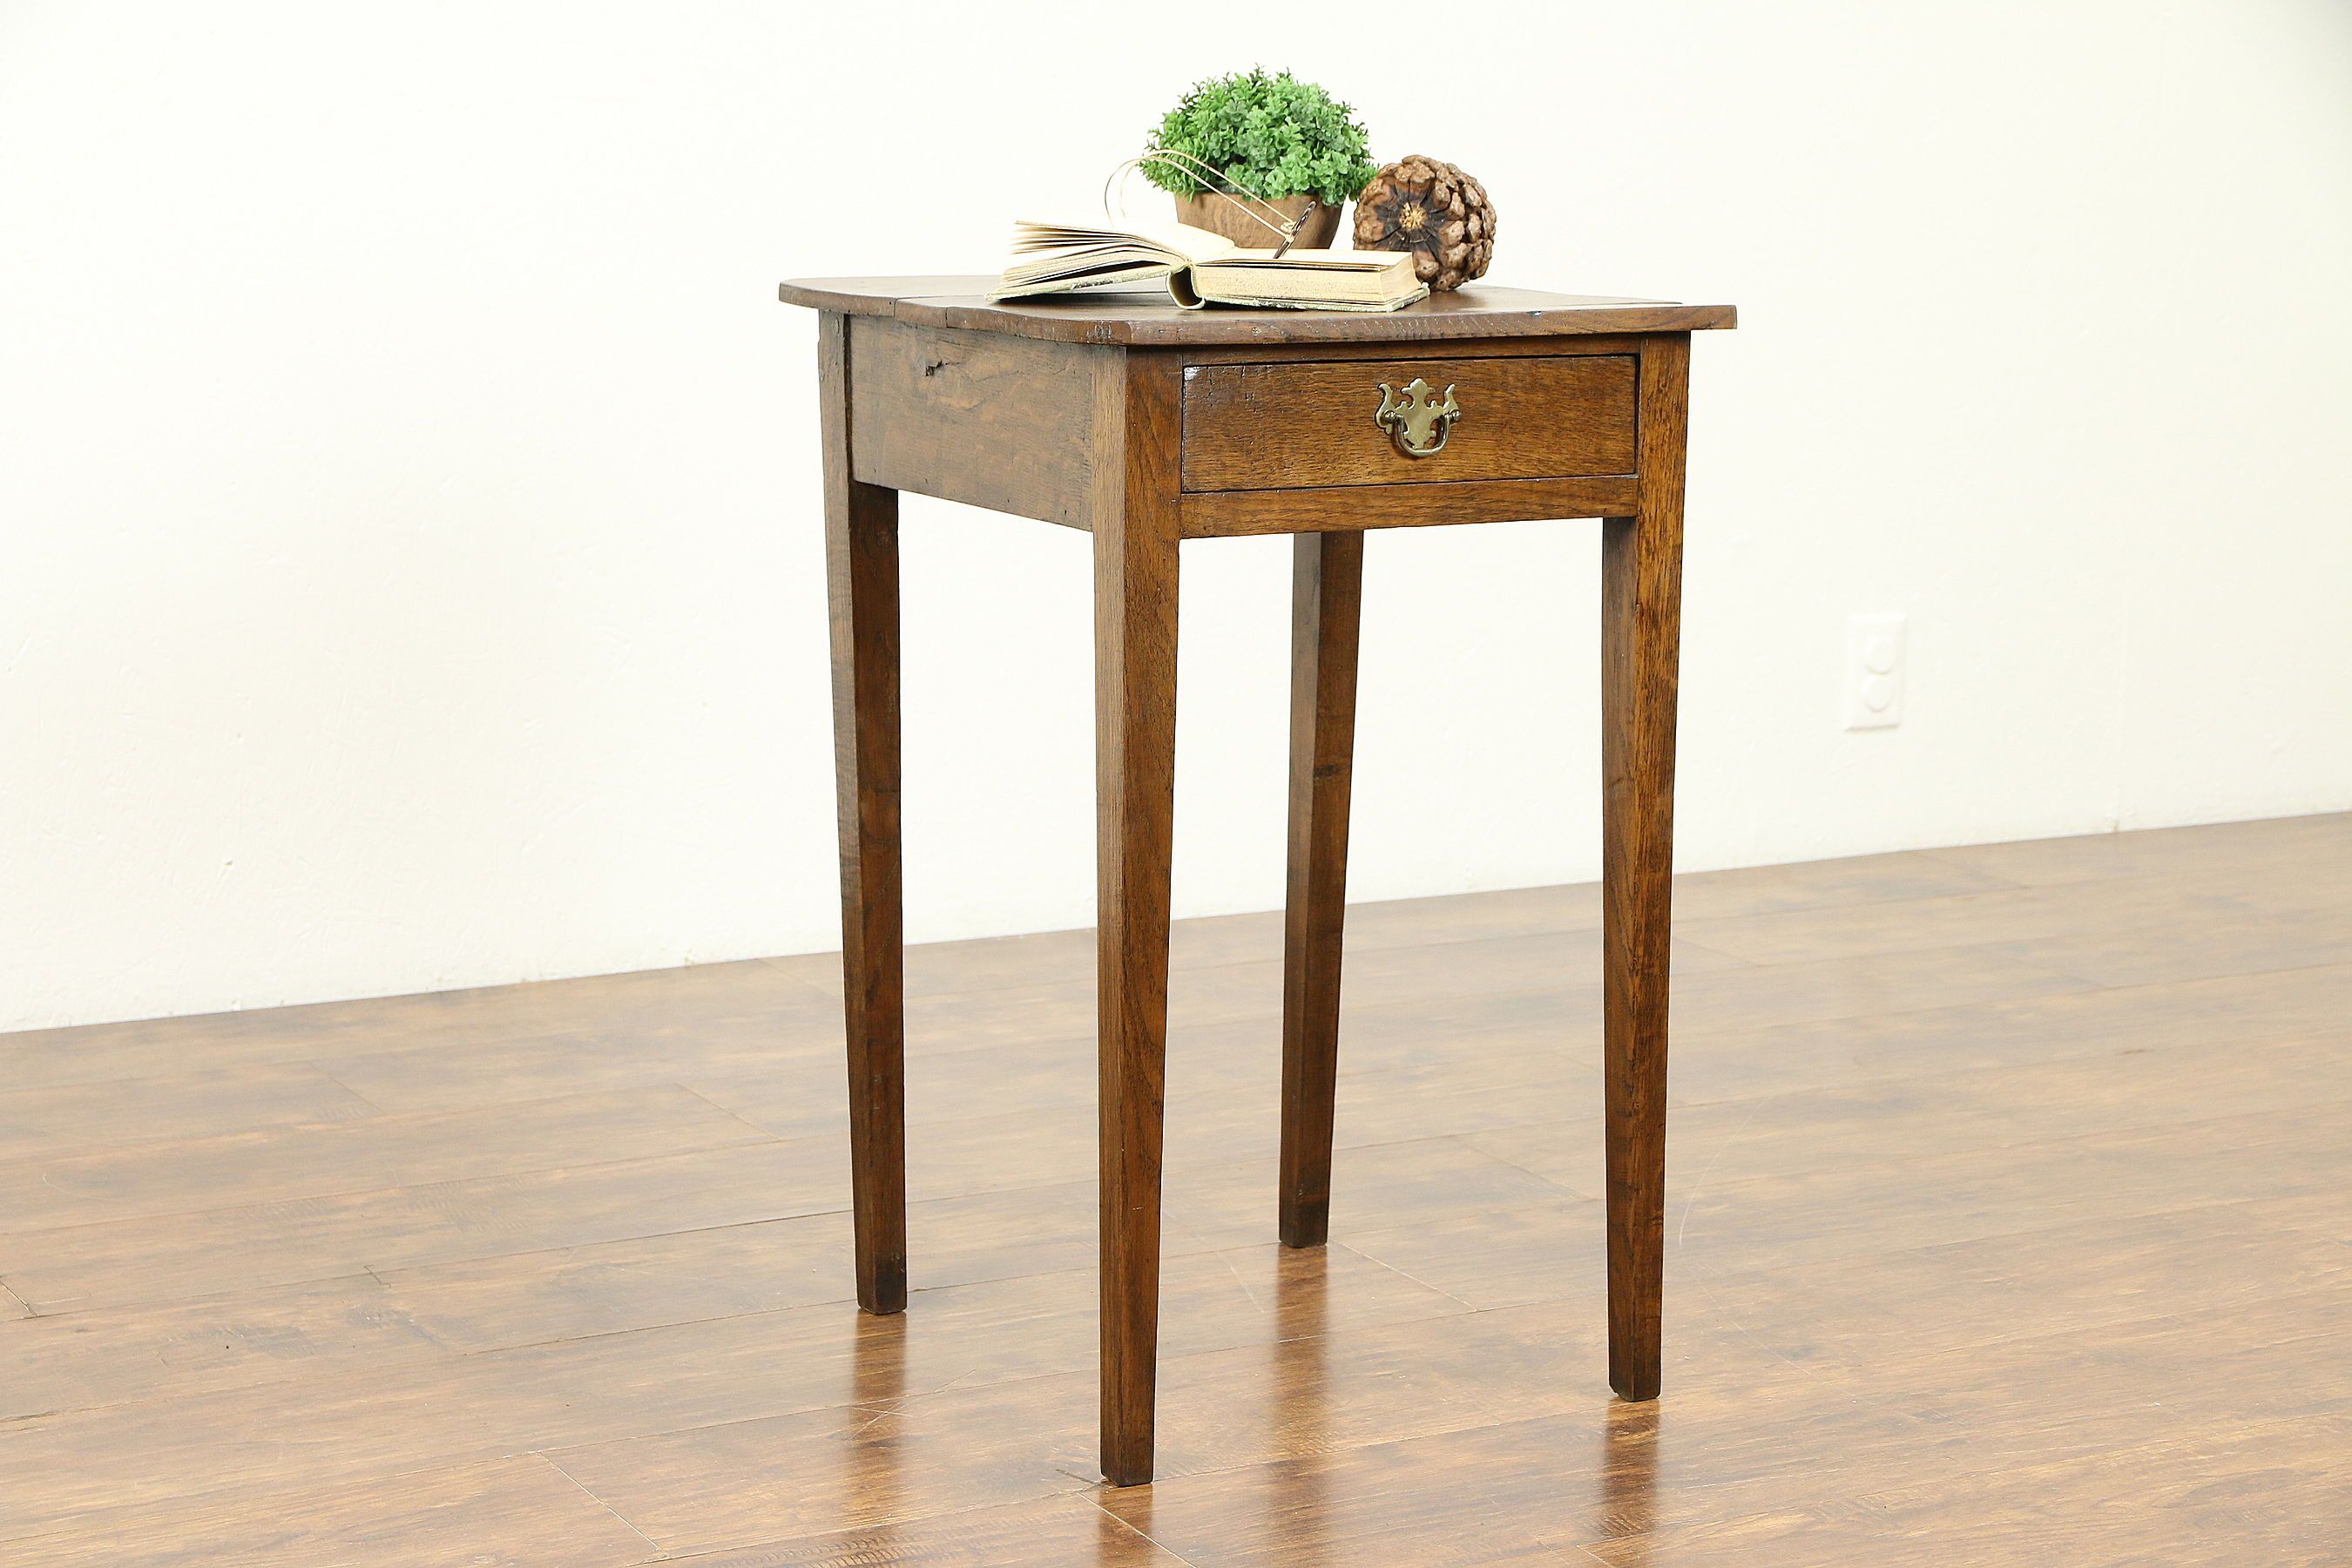 oak primitive antique nightstand lamp table bedroom end tables diy pipe leg dining small wedge elephant furniture creative dog beds grey wood and glass coffee animal cage laura